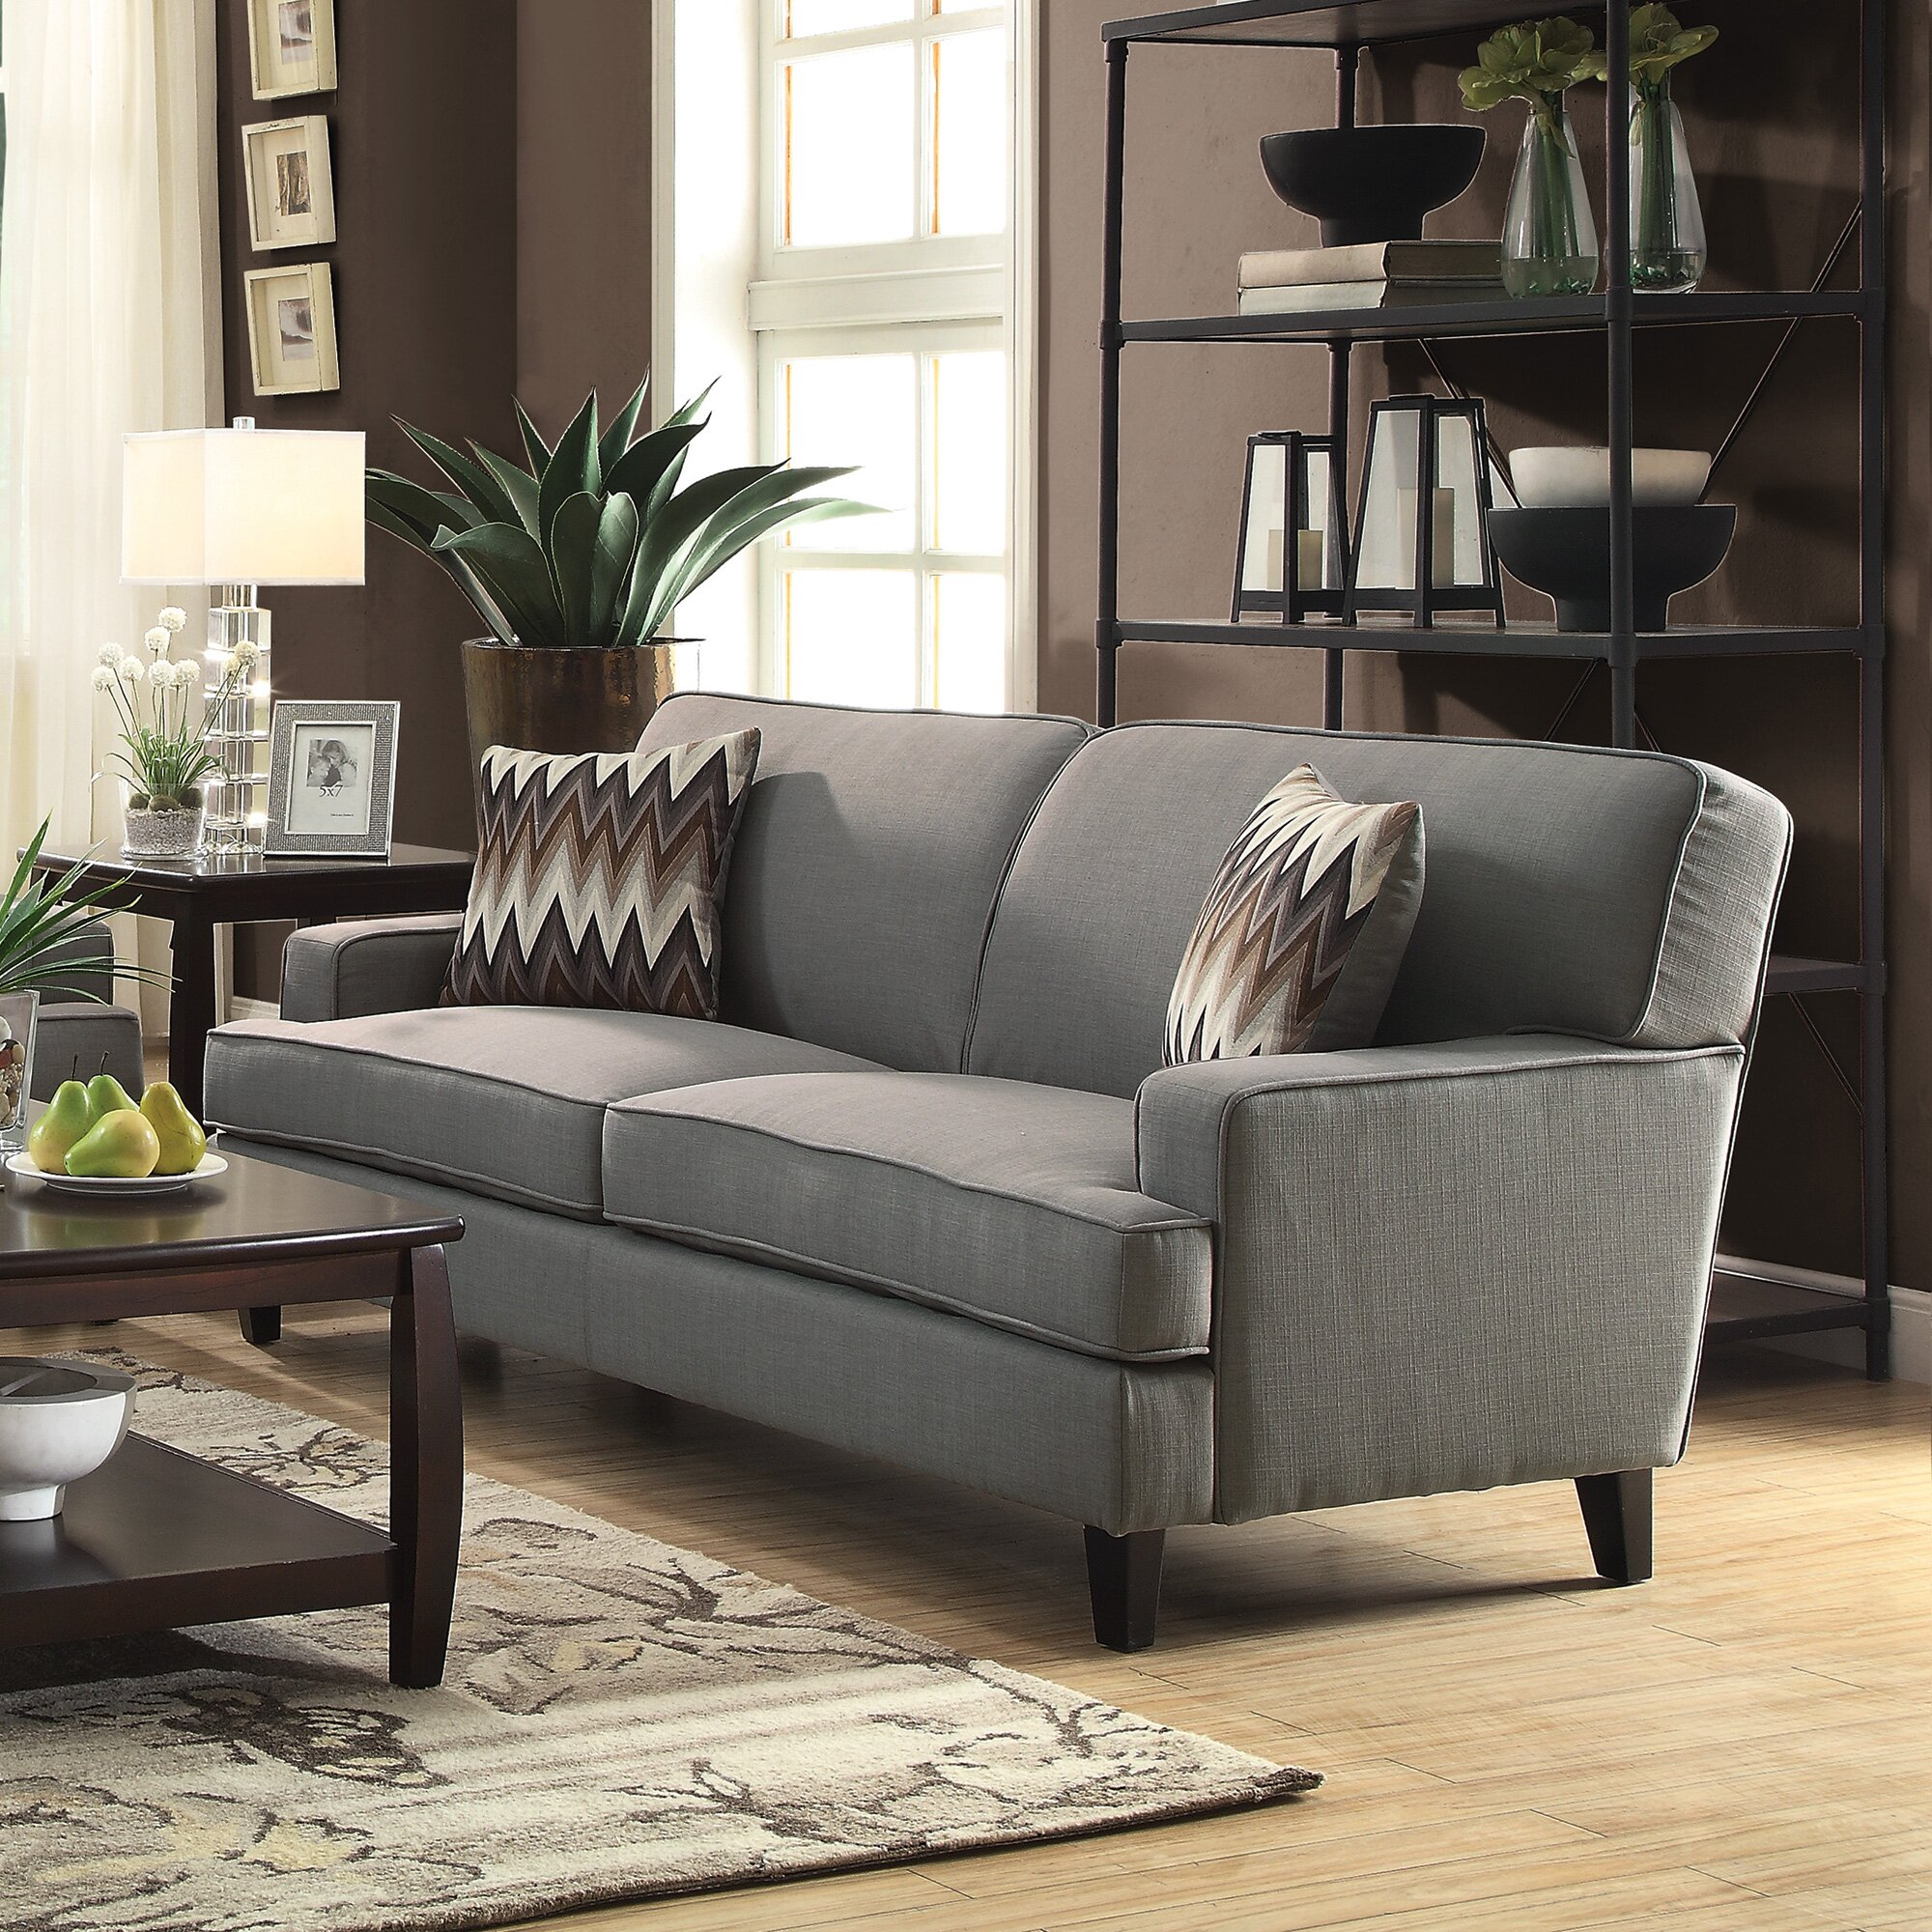 Wildon Home Finley Sofa Reviews Wayfair Supply